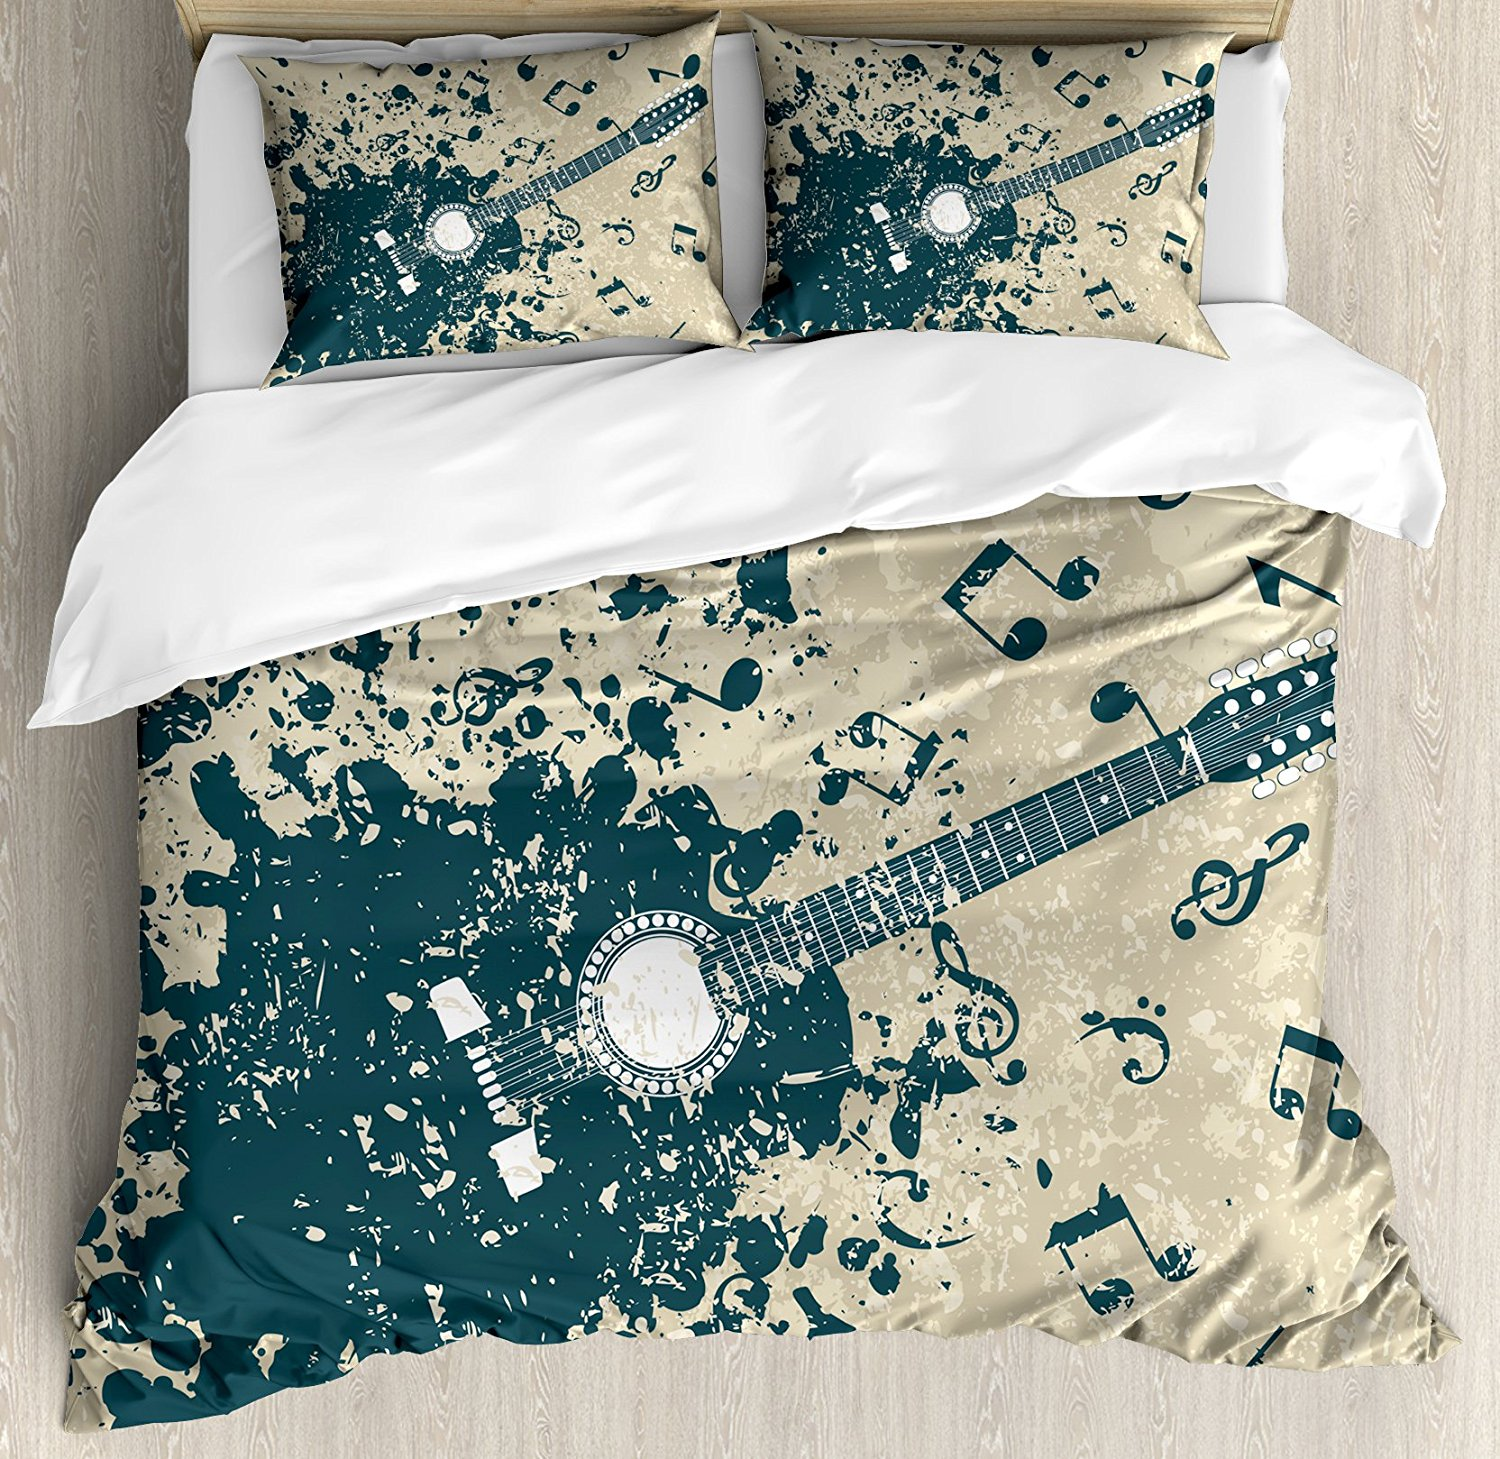 sheets bedding modern duvet sets and covers cover throughout remodel